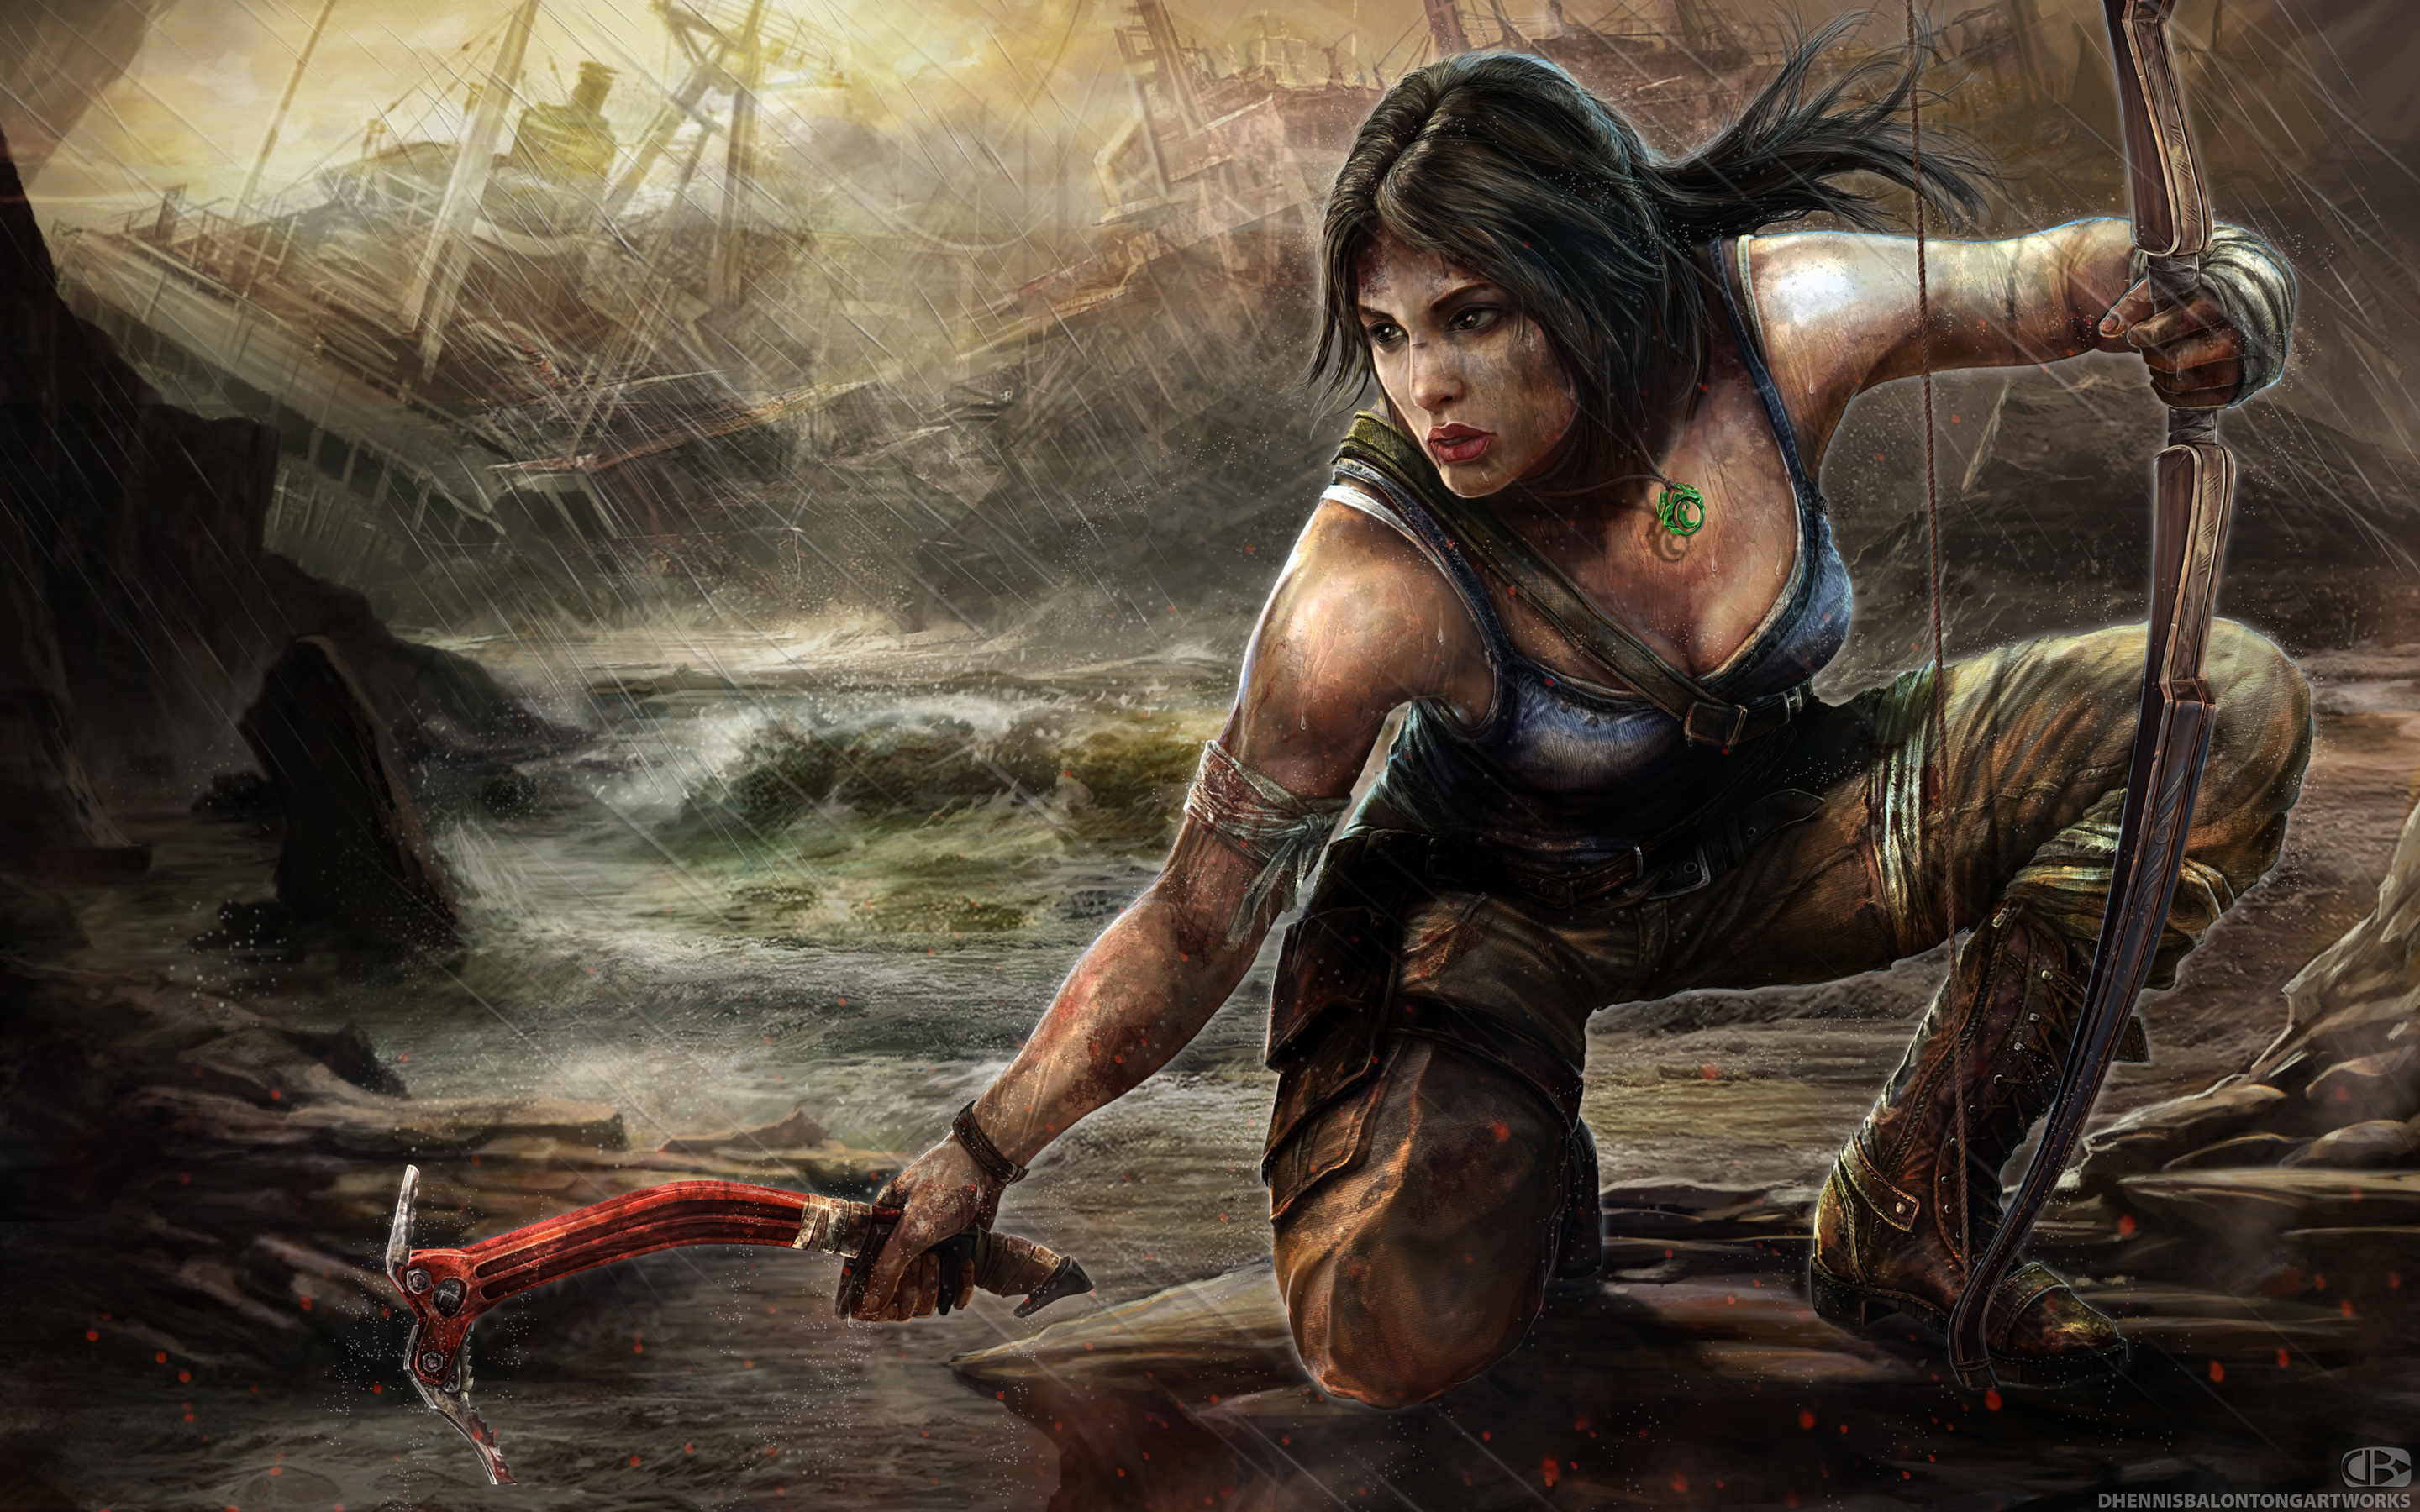 Lara Croft Tomb Raider Artwork 1540.8 Kb